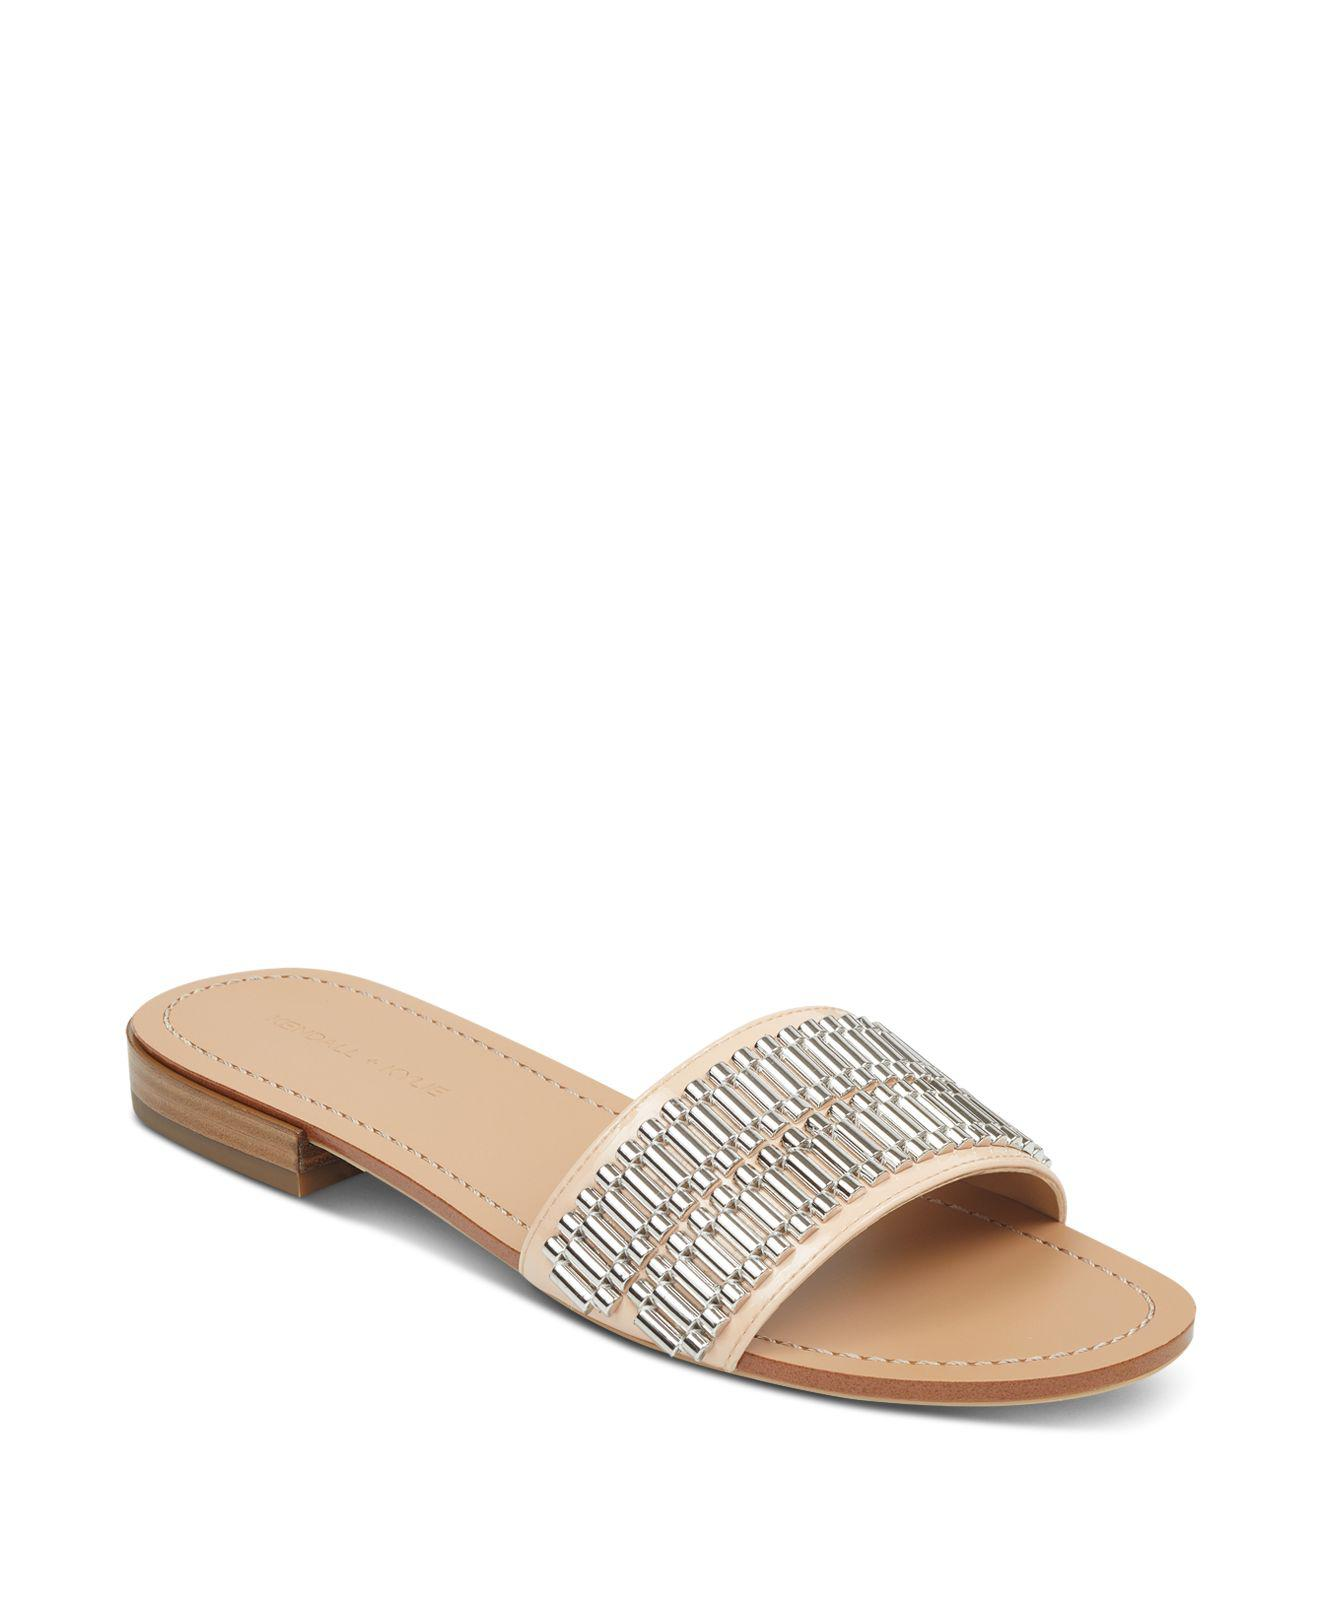 Kendall And Kylie Women's Kennedy Embellished Slide Sandals